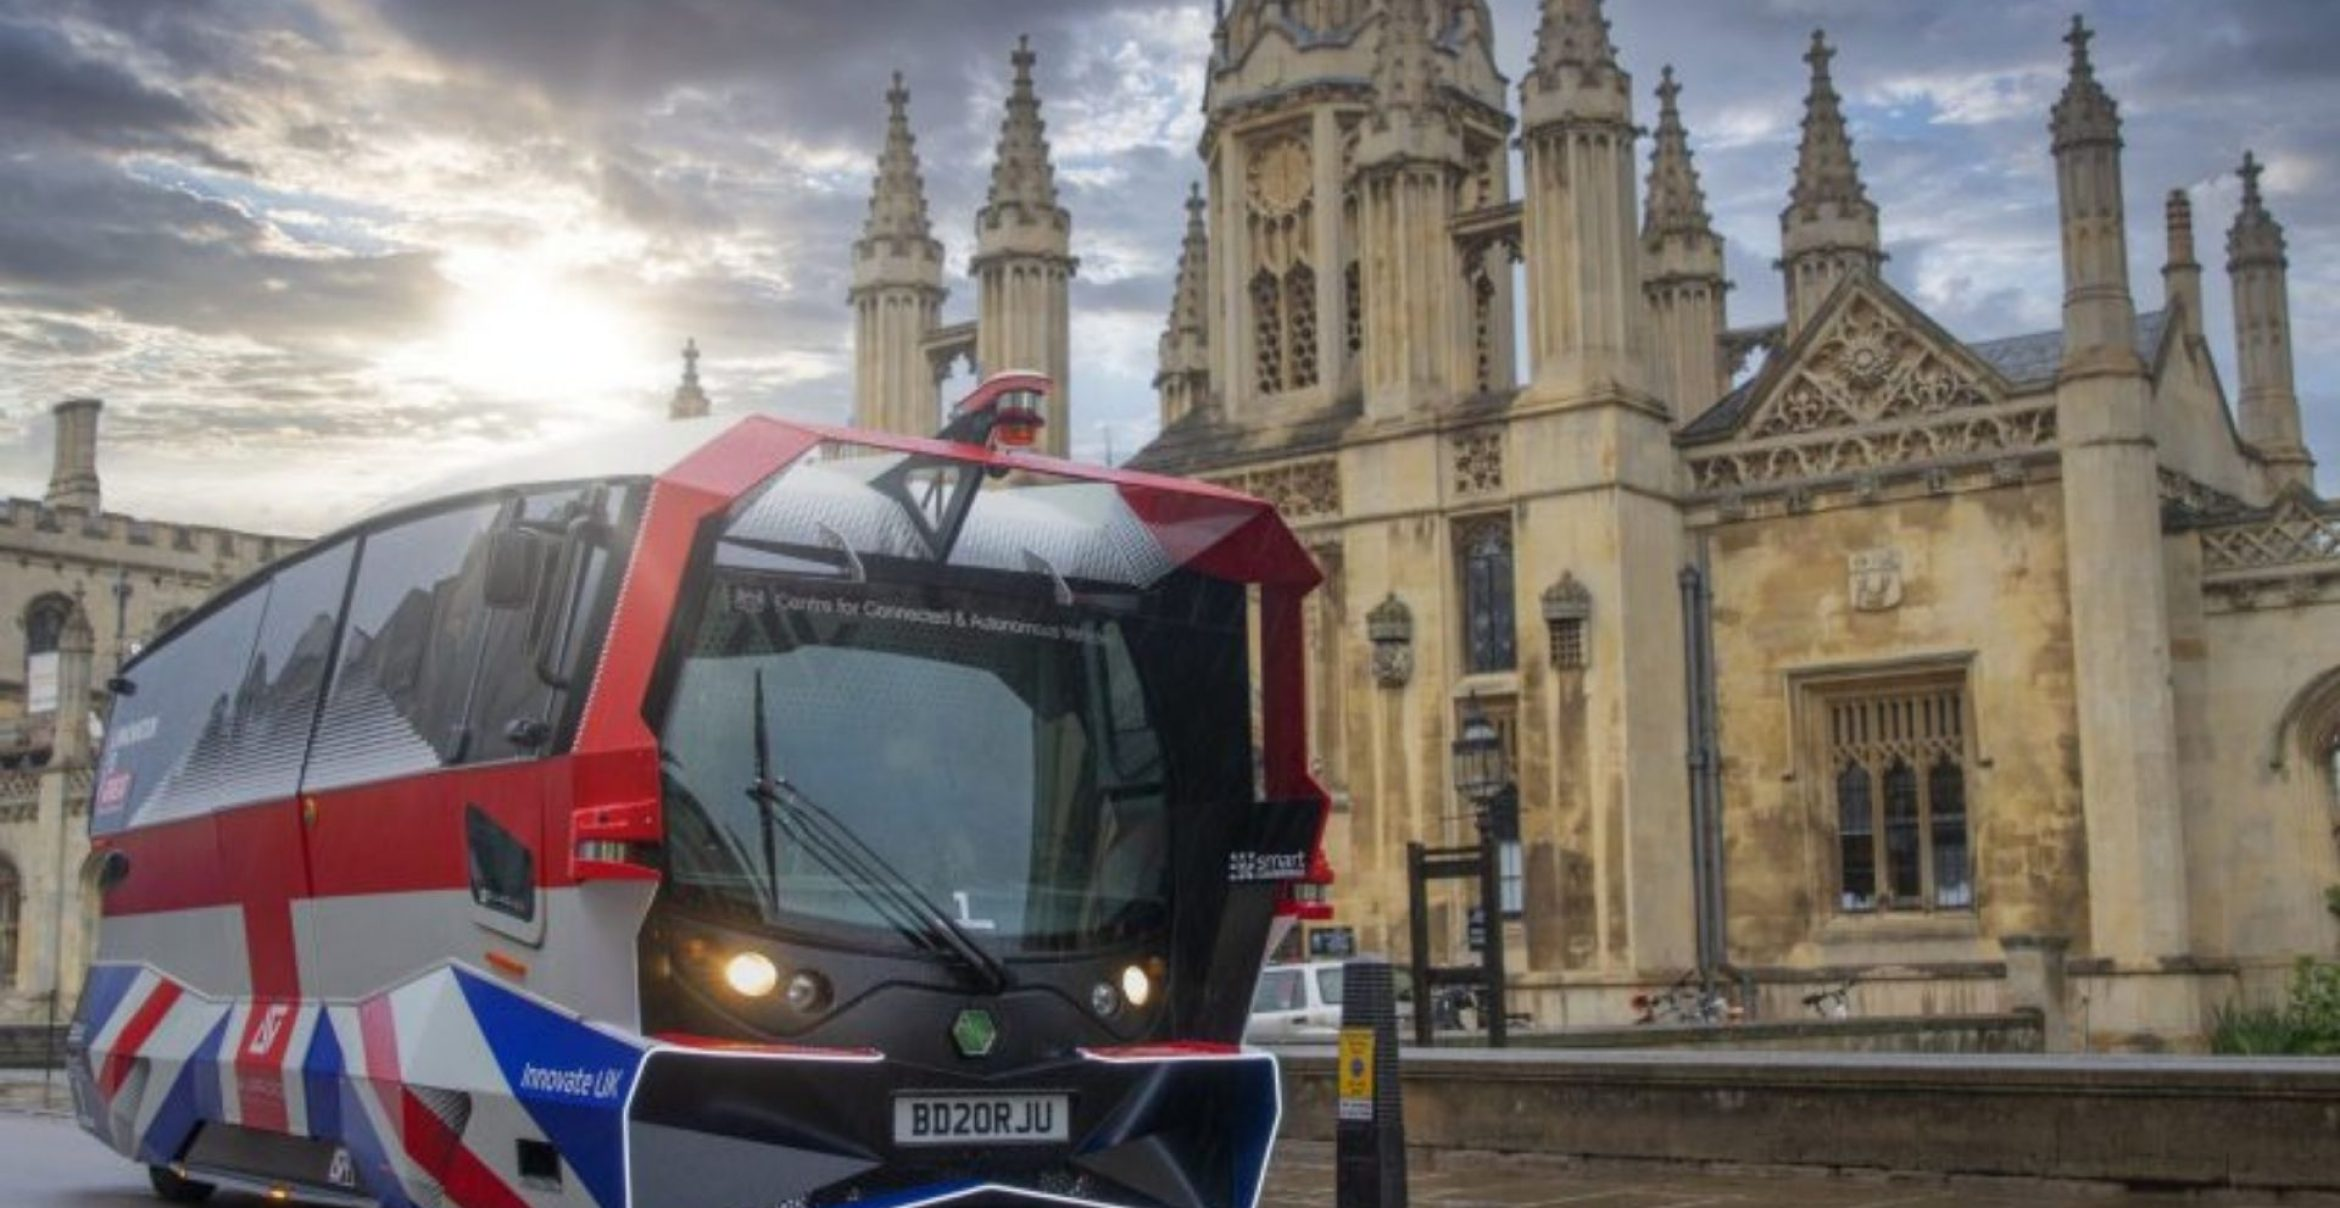 """""""Looks like an angry Pokemon"""": Cambridges autonome Busse in Aktion"""